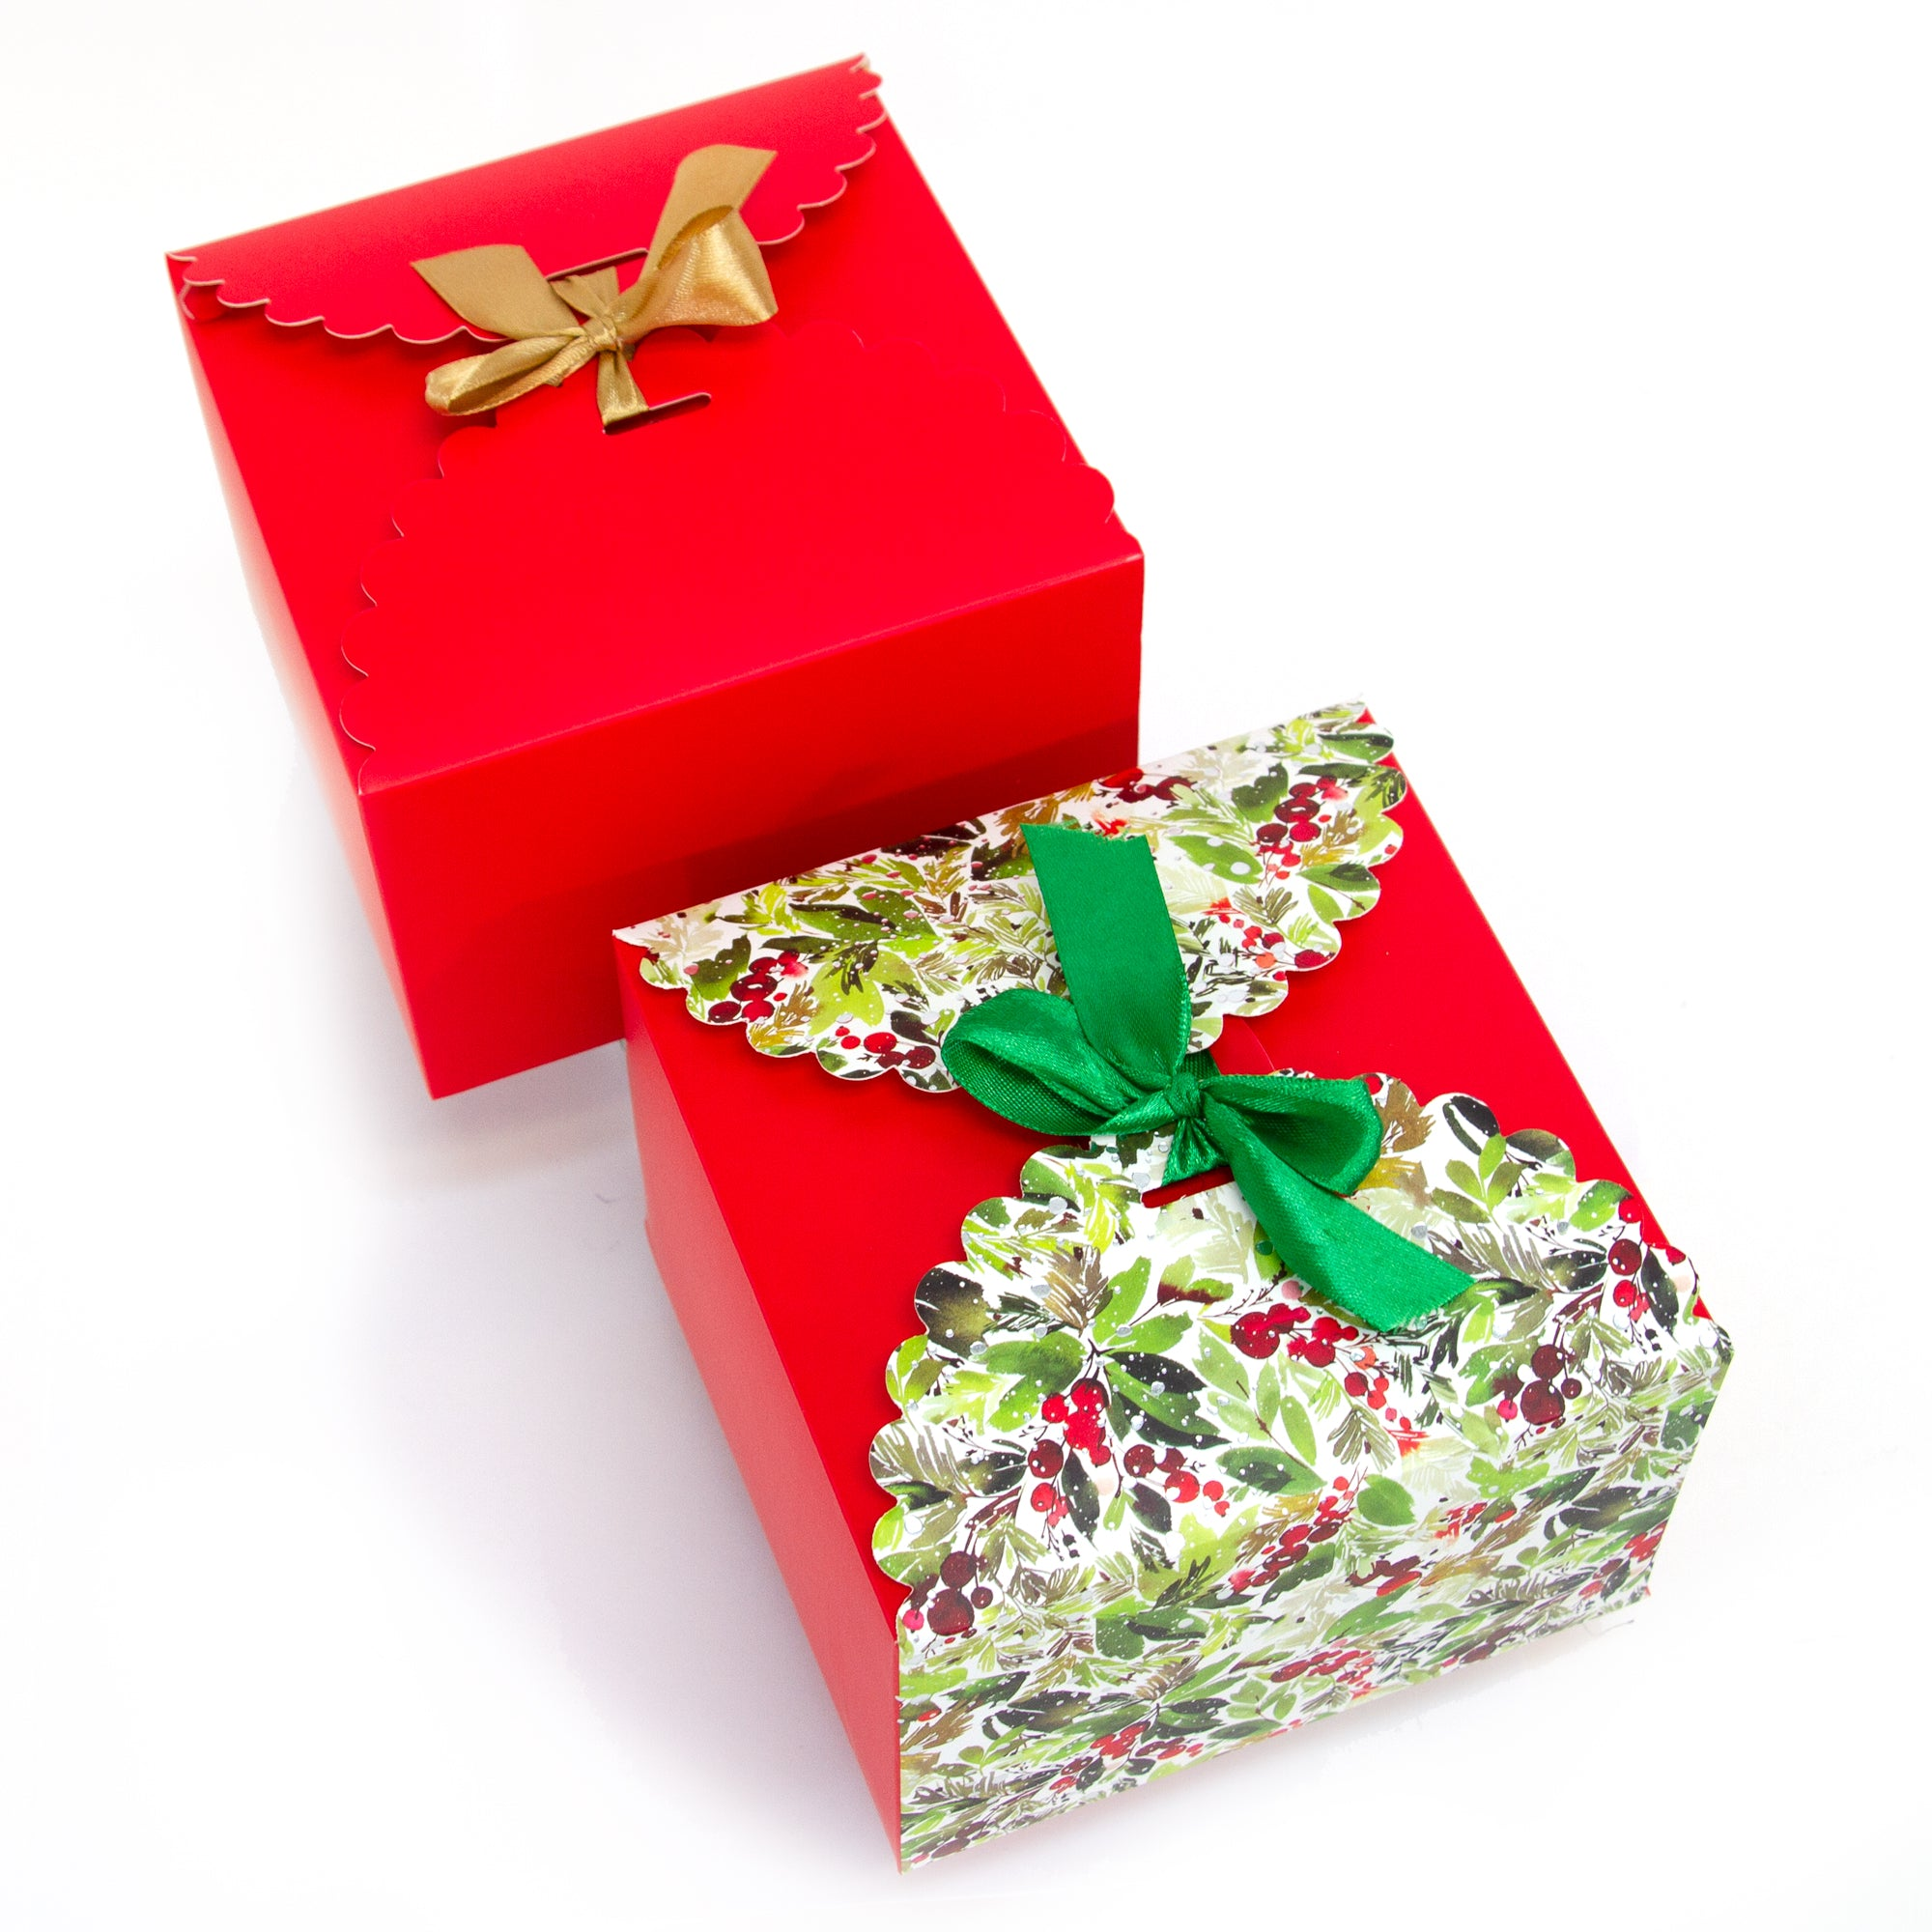 flower edge gift boxes, large favor gift boxes, scallop edge gift boxes, favor boxes, gift boxes, holiday gift boxes with ribbons, hot stamp premium gift boxes, christmas gift boxes, holiday favor gift boxes, teacher's appreciation week gift boxes, gift boxes in bulk | Gift Expressions